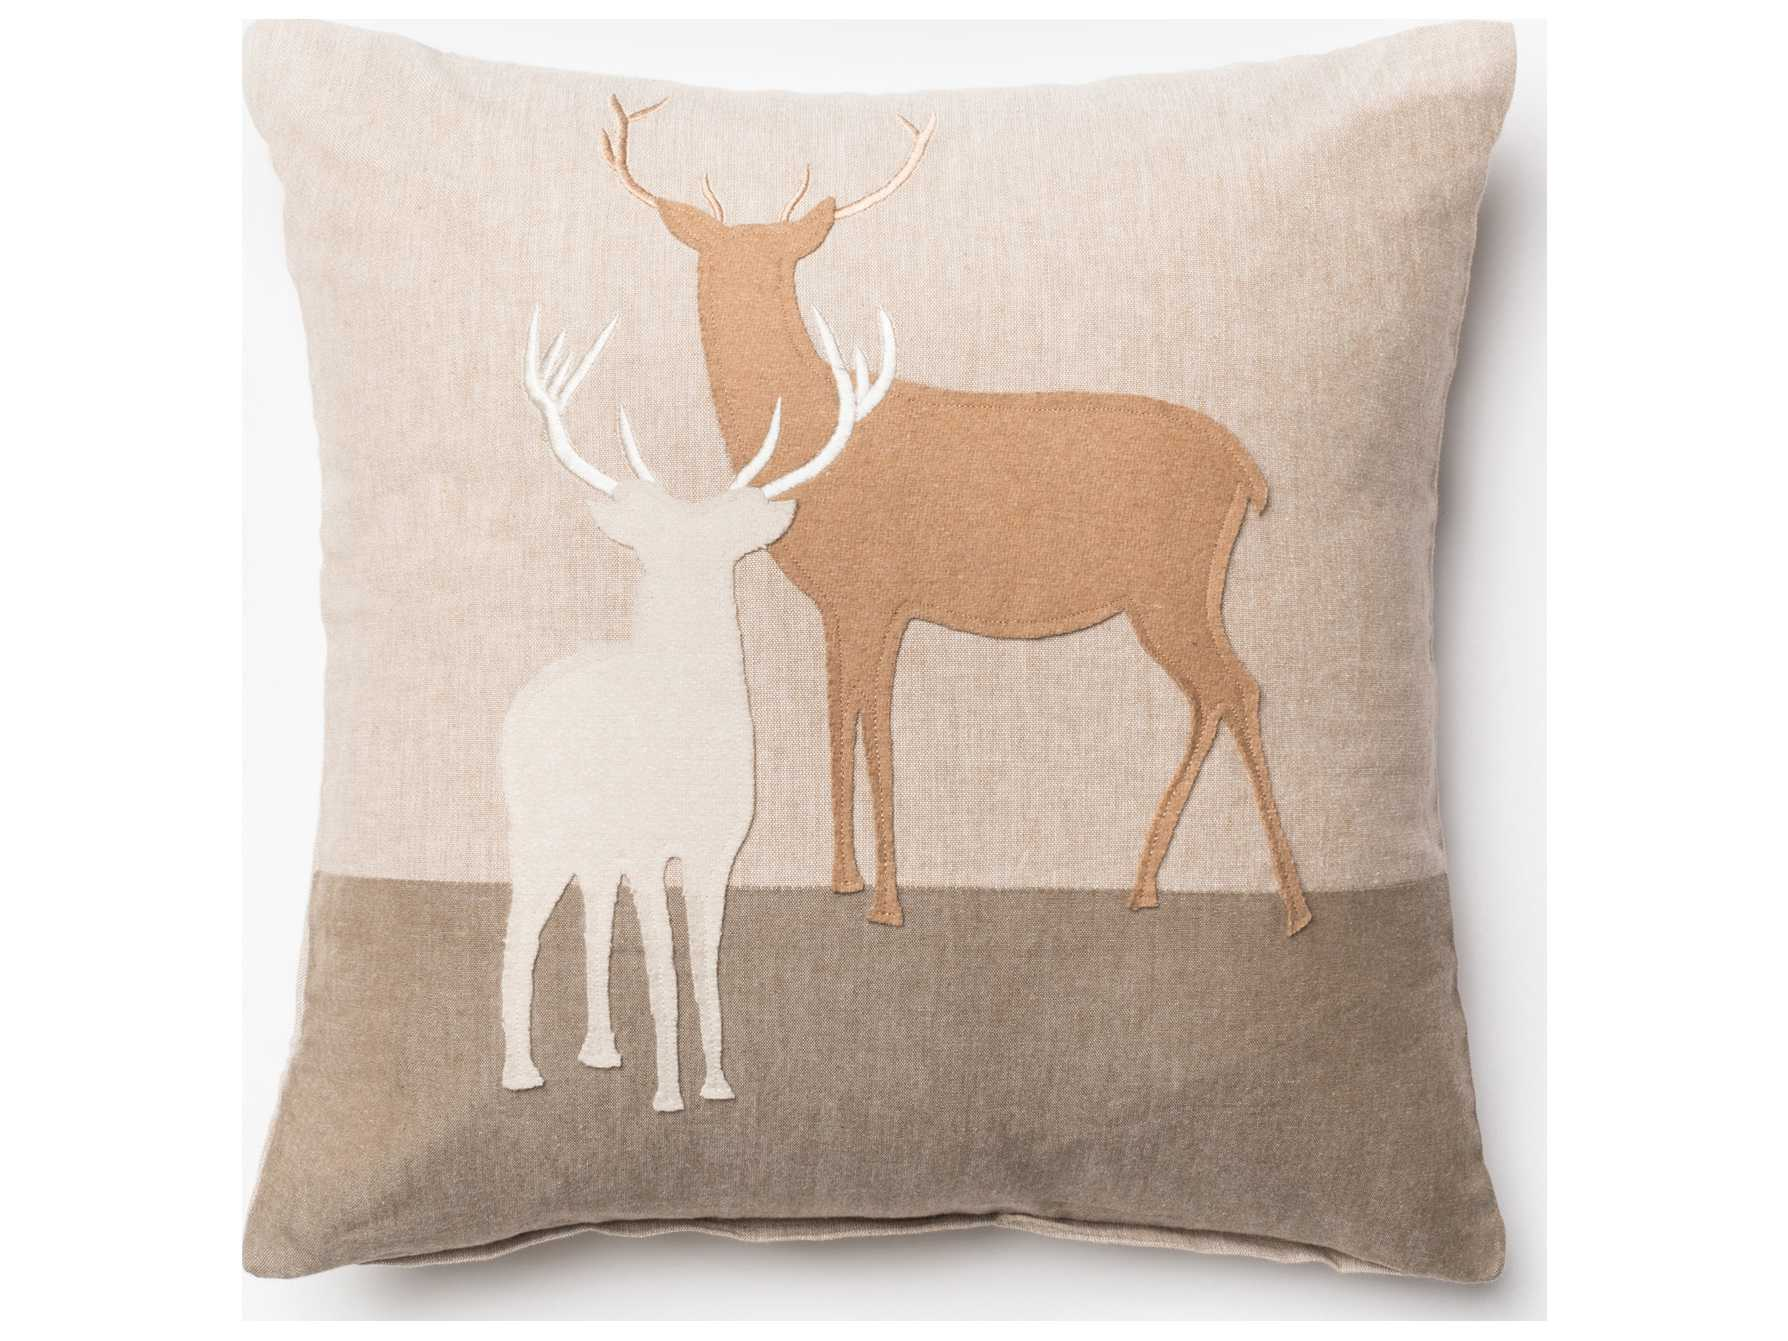 Loloi rugs 18 39 39 square beige pillow p0151bemlpil1 for Loloi pillows